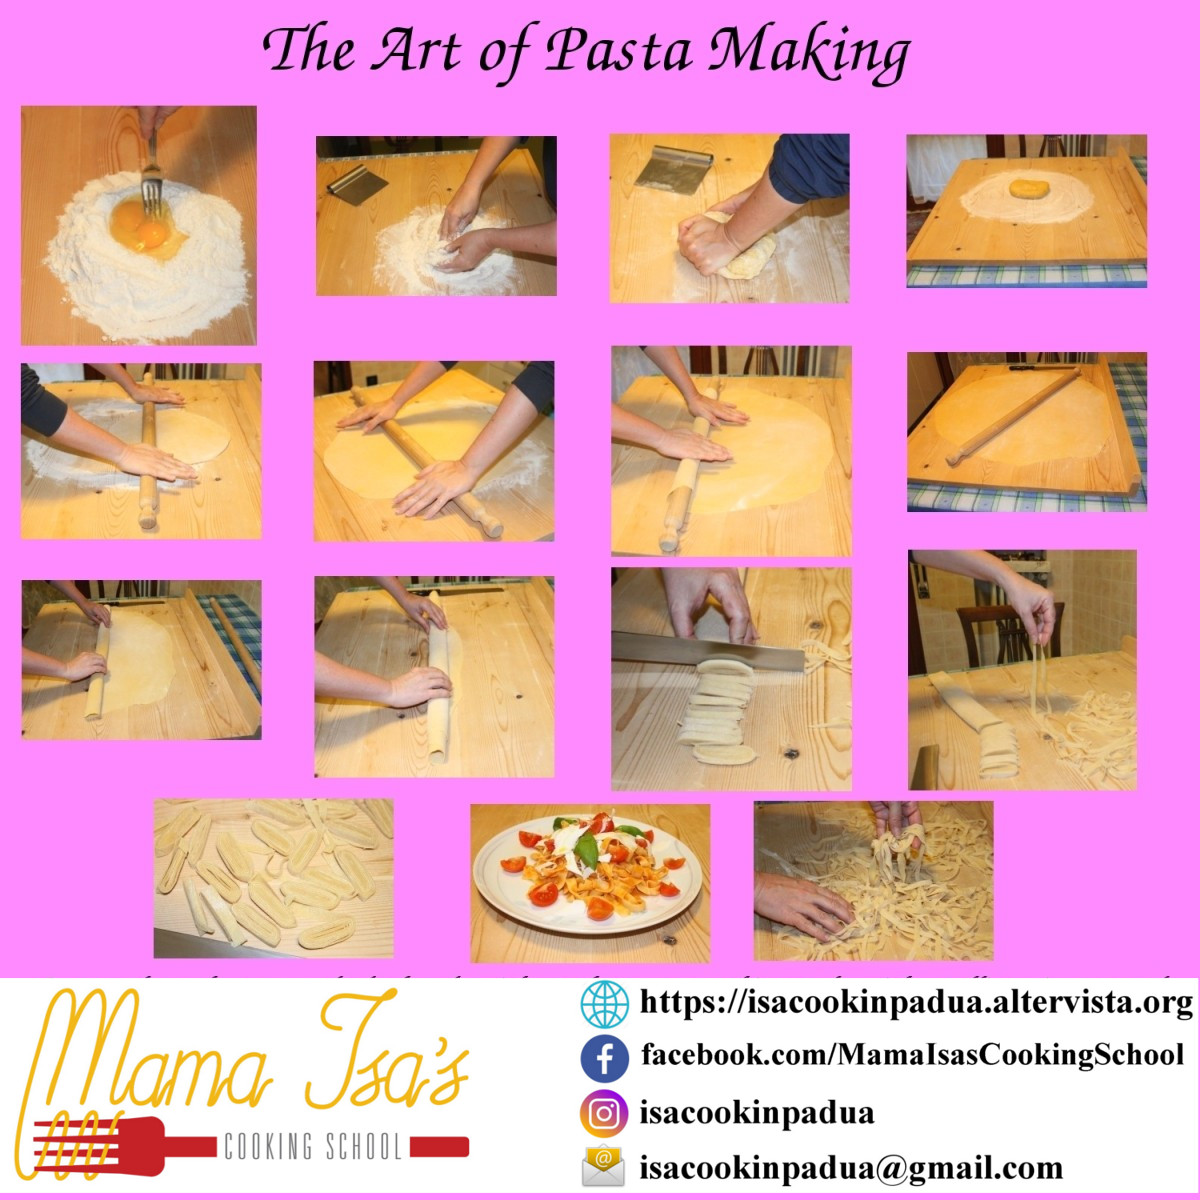 The Art of Pasta Making in Italy, near Venice, Padova with Mama Isa